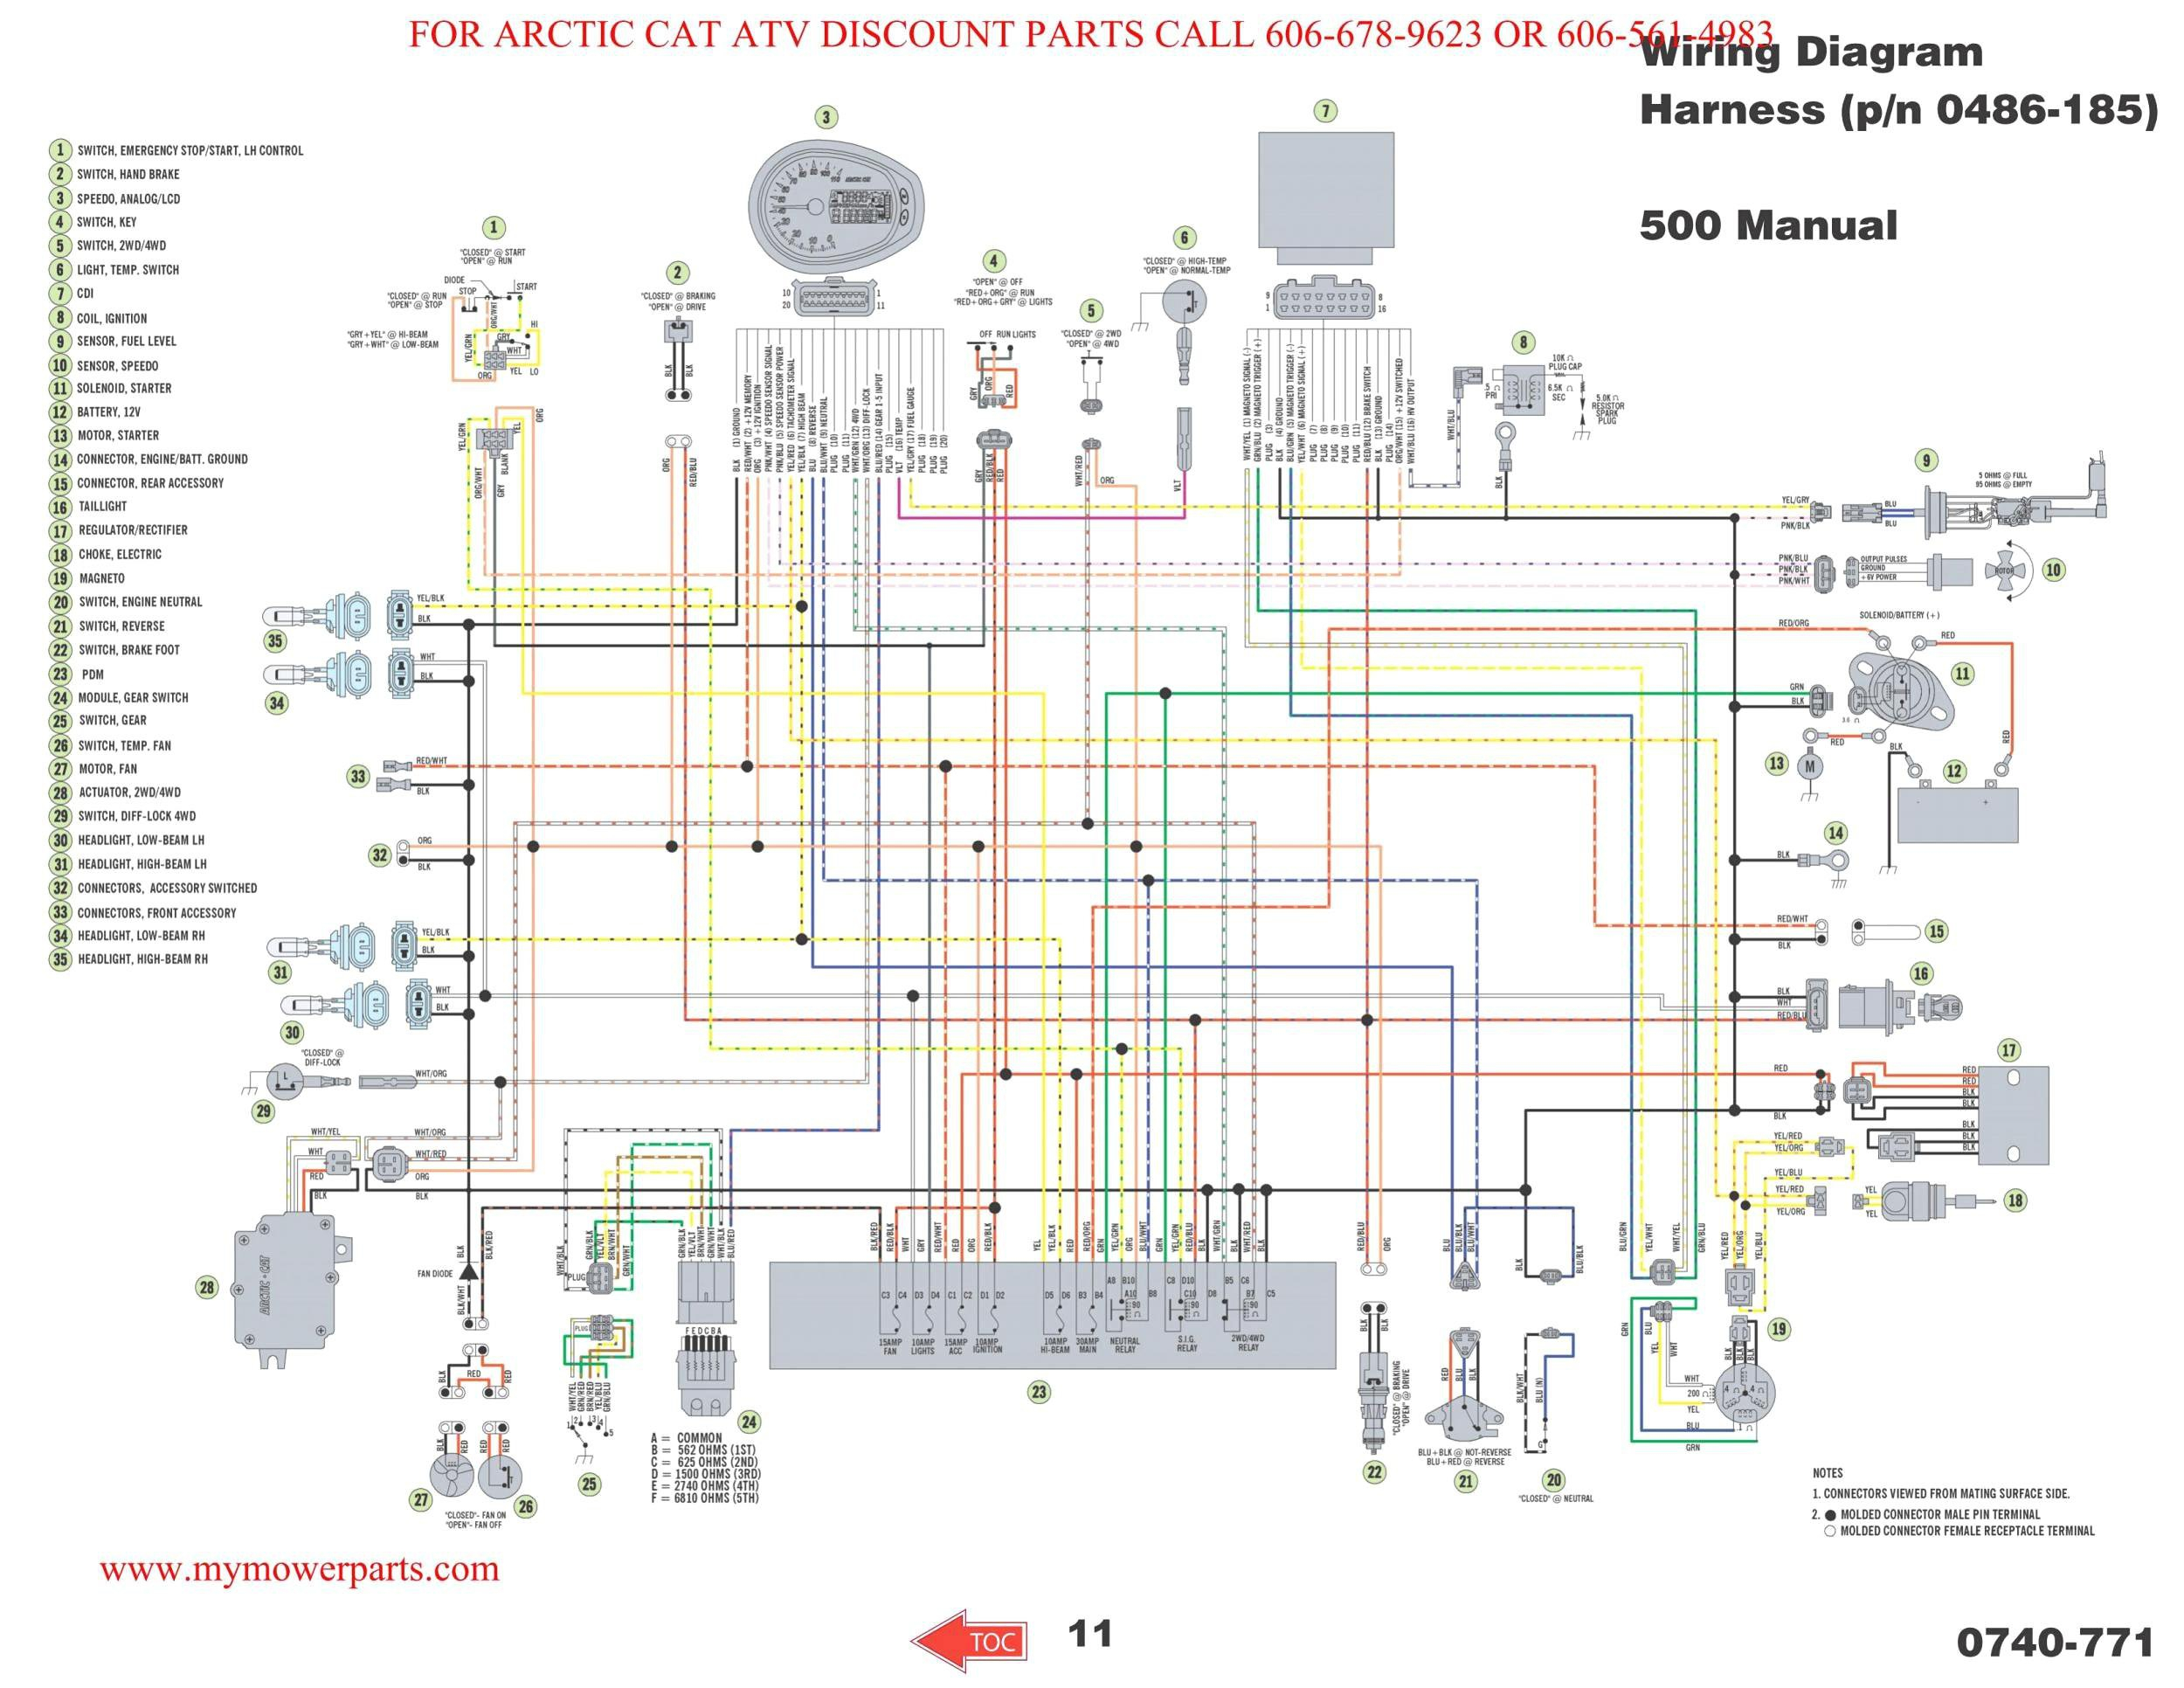 rzr wiring diagram wiring diagram rh a29 tempoturn de